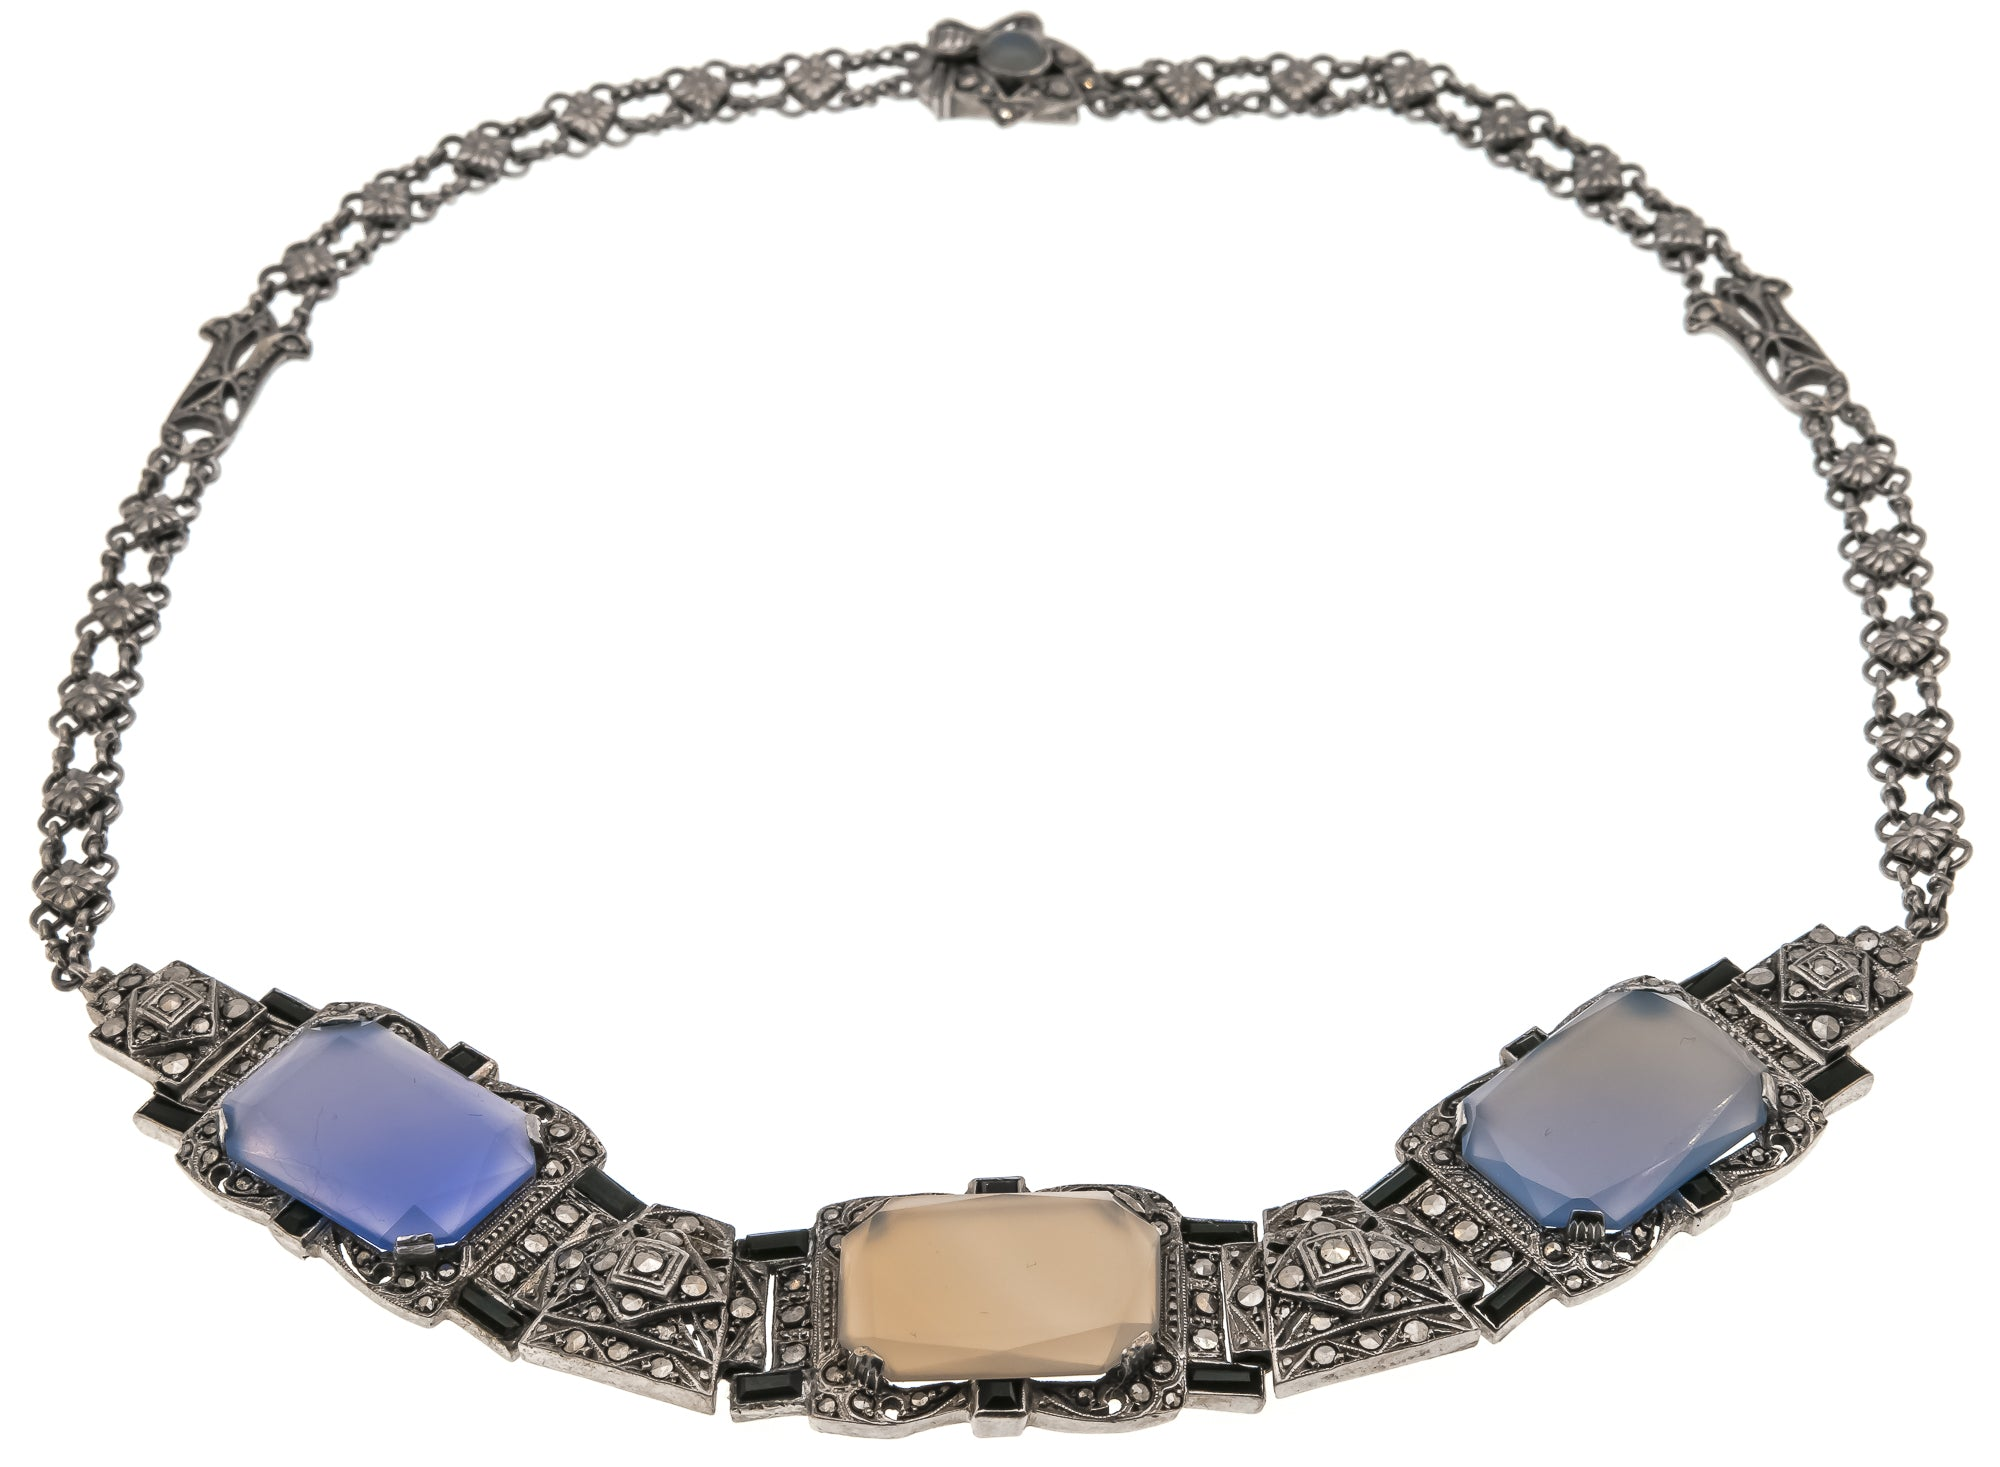 Mystical Jewels  - Art Deco Sterling Silver Chalcedony, Onyx & Marcasite Necklace (ADN059)